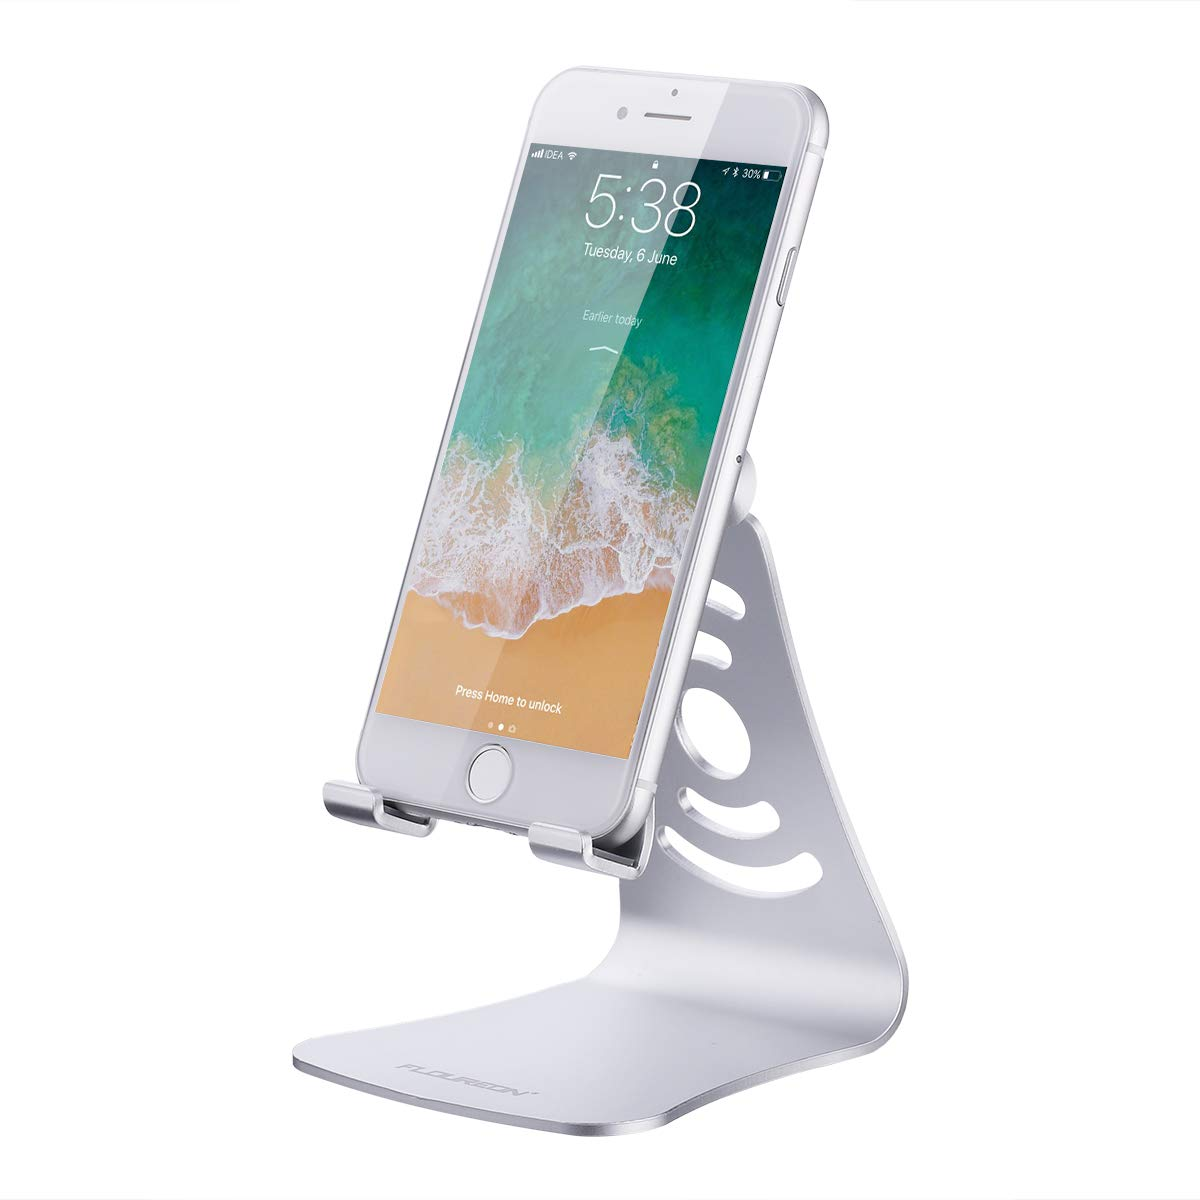 FLOUREON Phone Stand Aluminum Tablet Stand Desktop Stand Holder 270°Multi-Angle Stand/Holder/Dock Replacement Stand for iPad mini iPad Pro Samsung S8/S8 Plus/Note 8 Tablets and Smart Phones Black